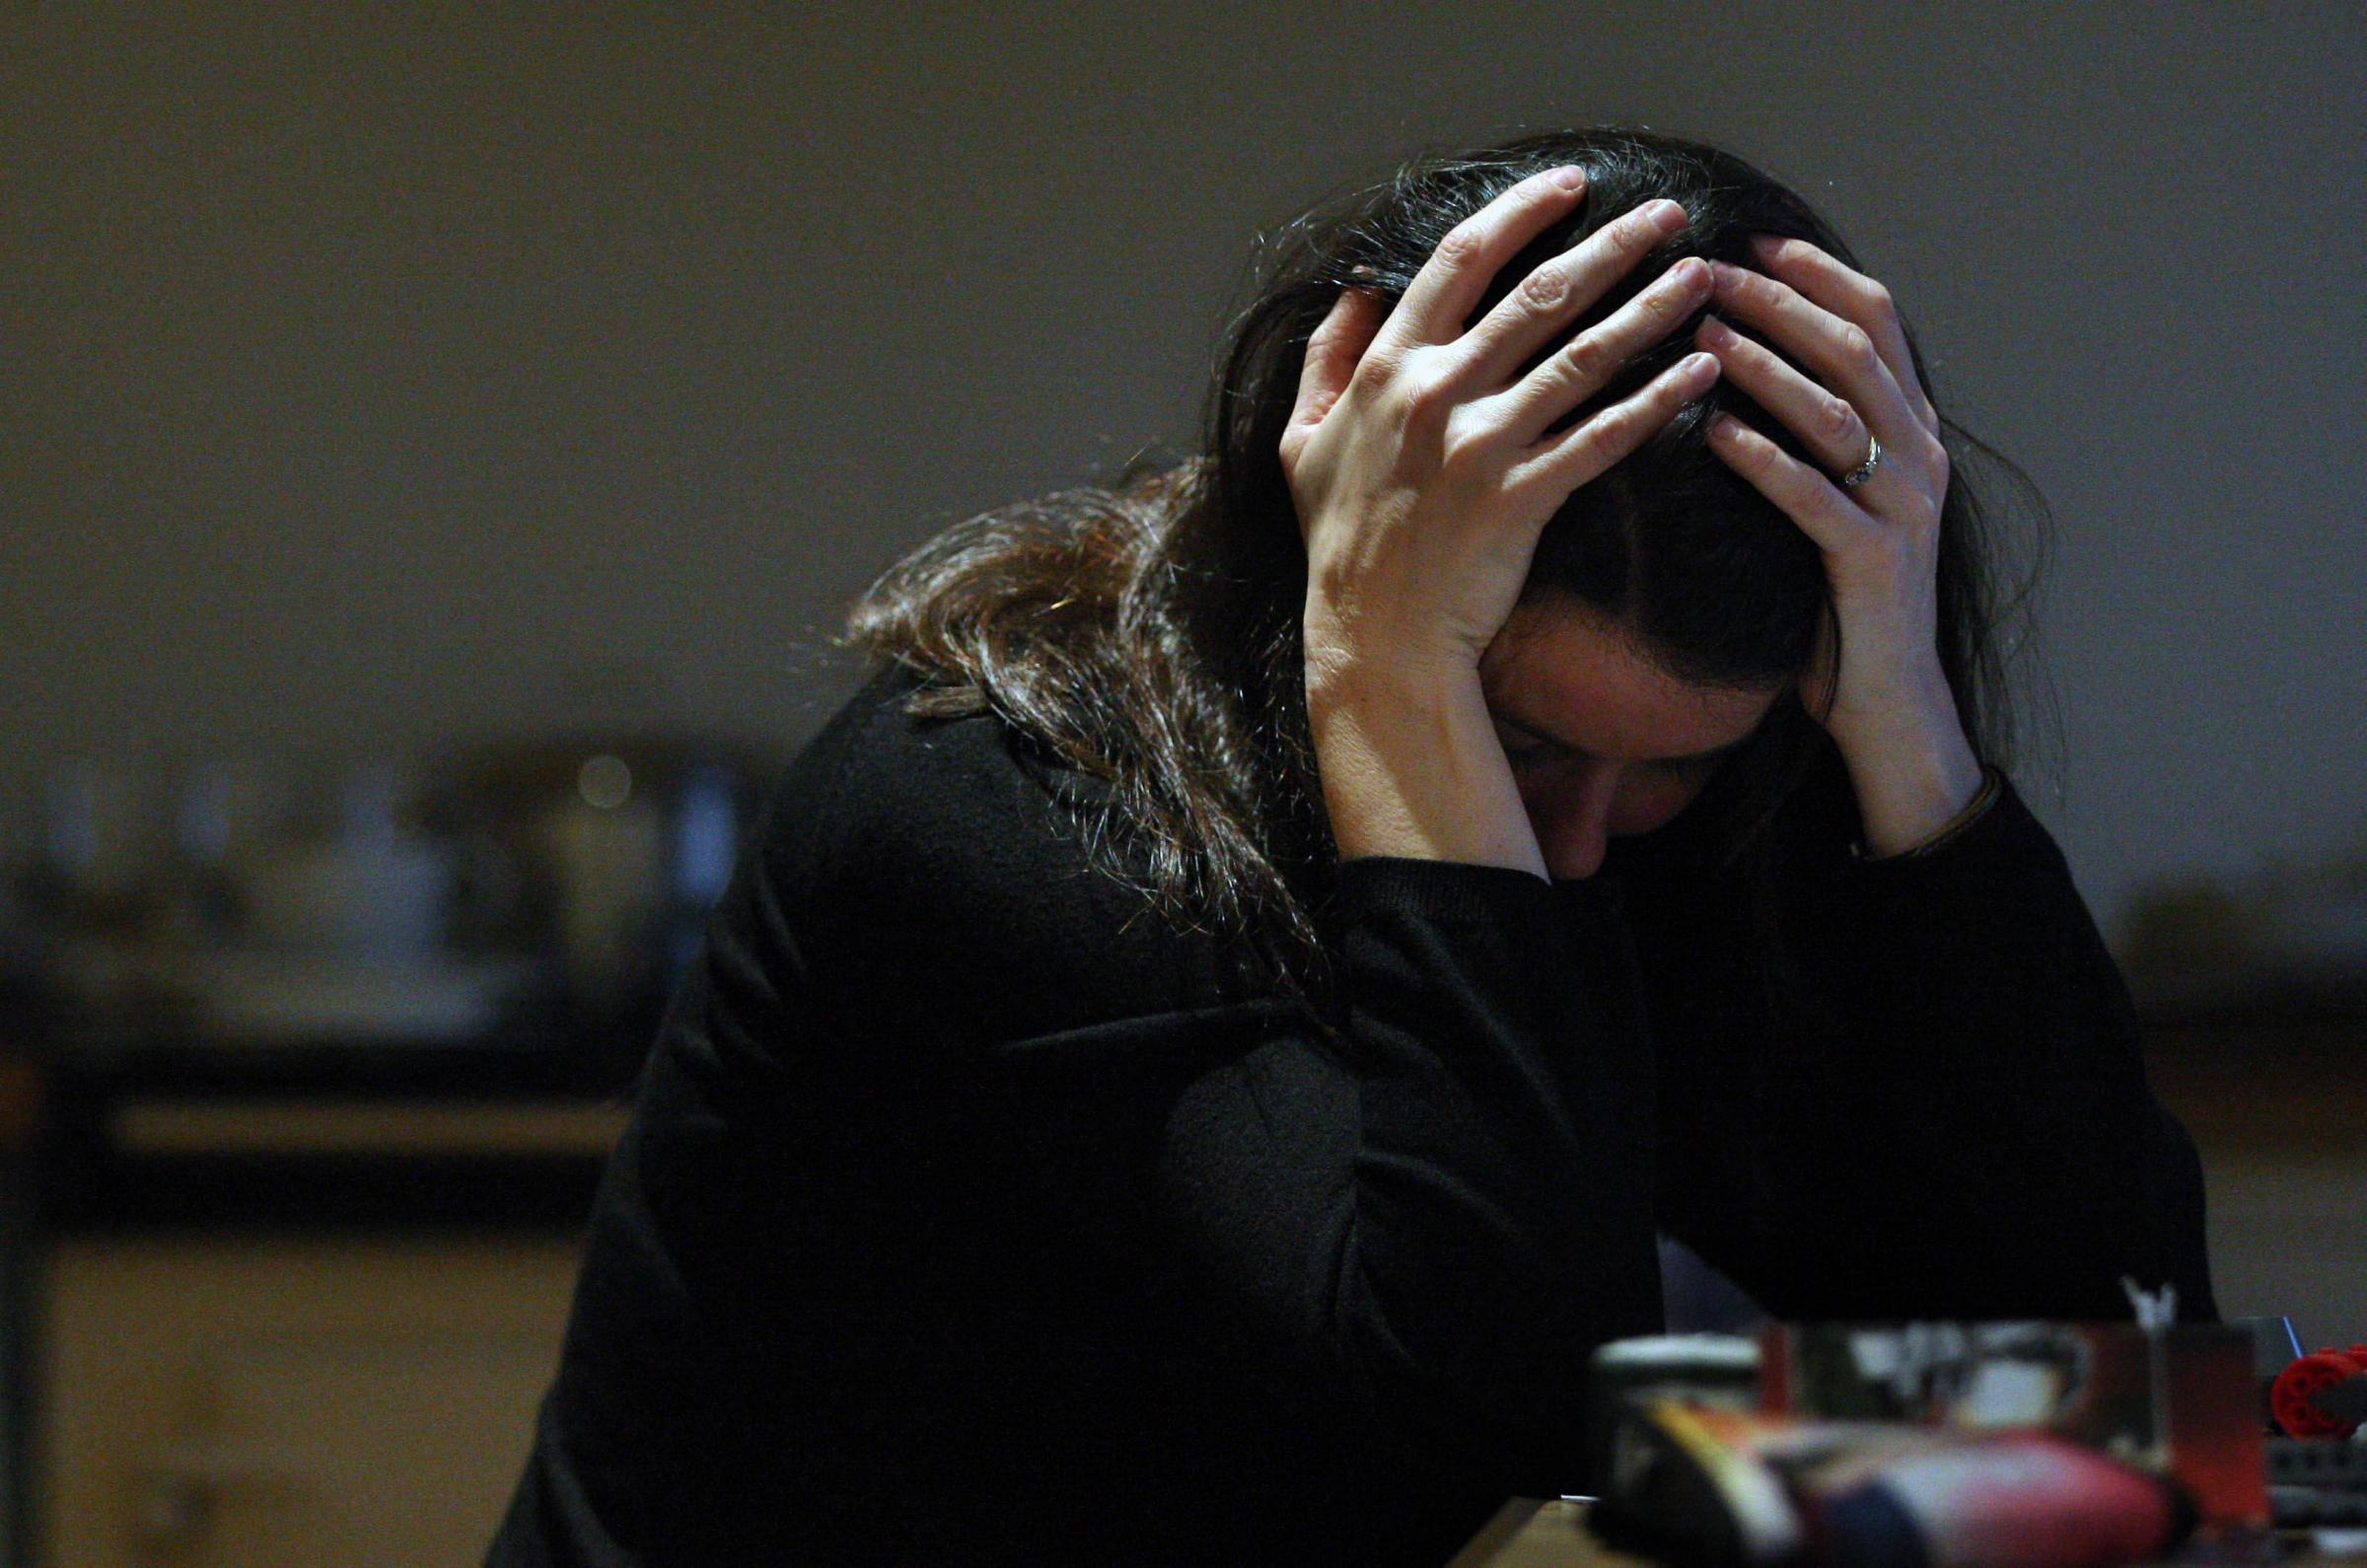 People living in Dorset now have 24/7 access to help for their mental health issues